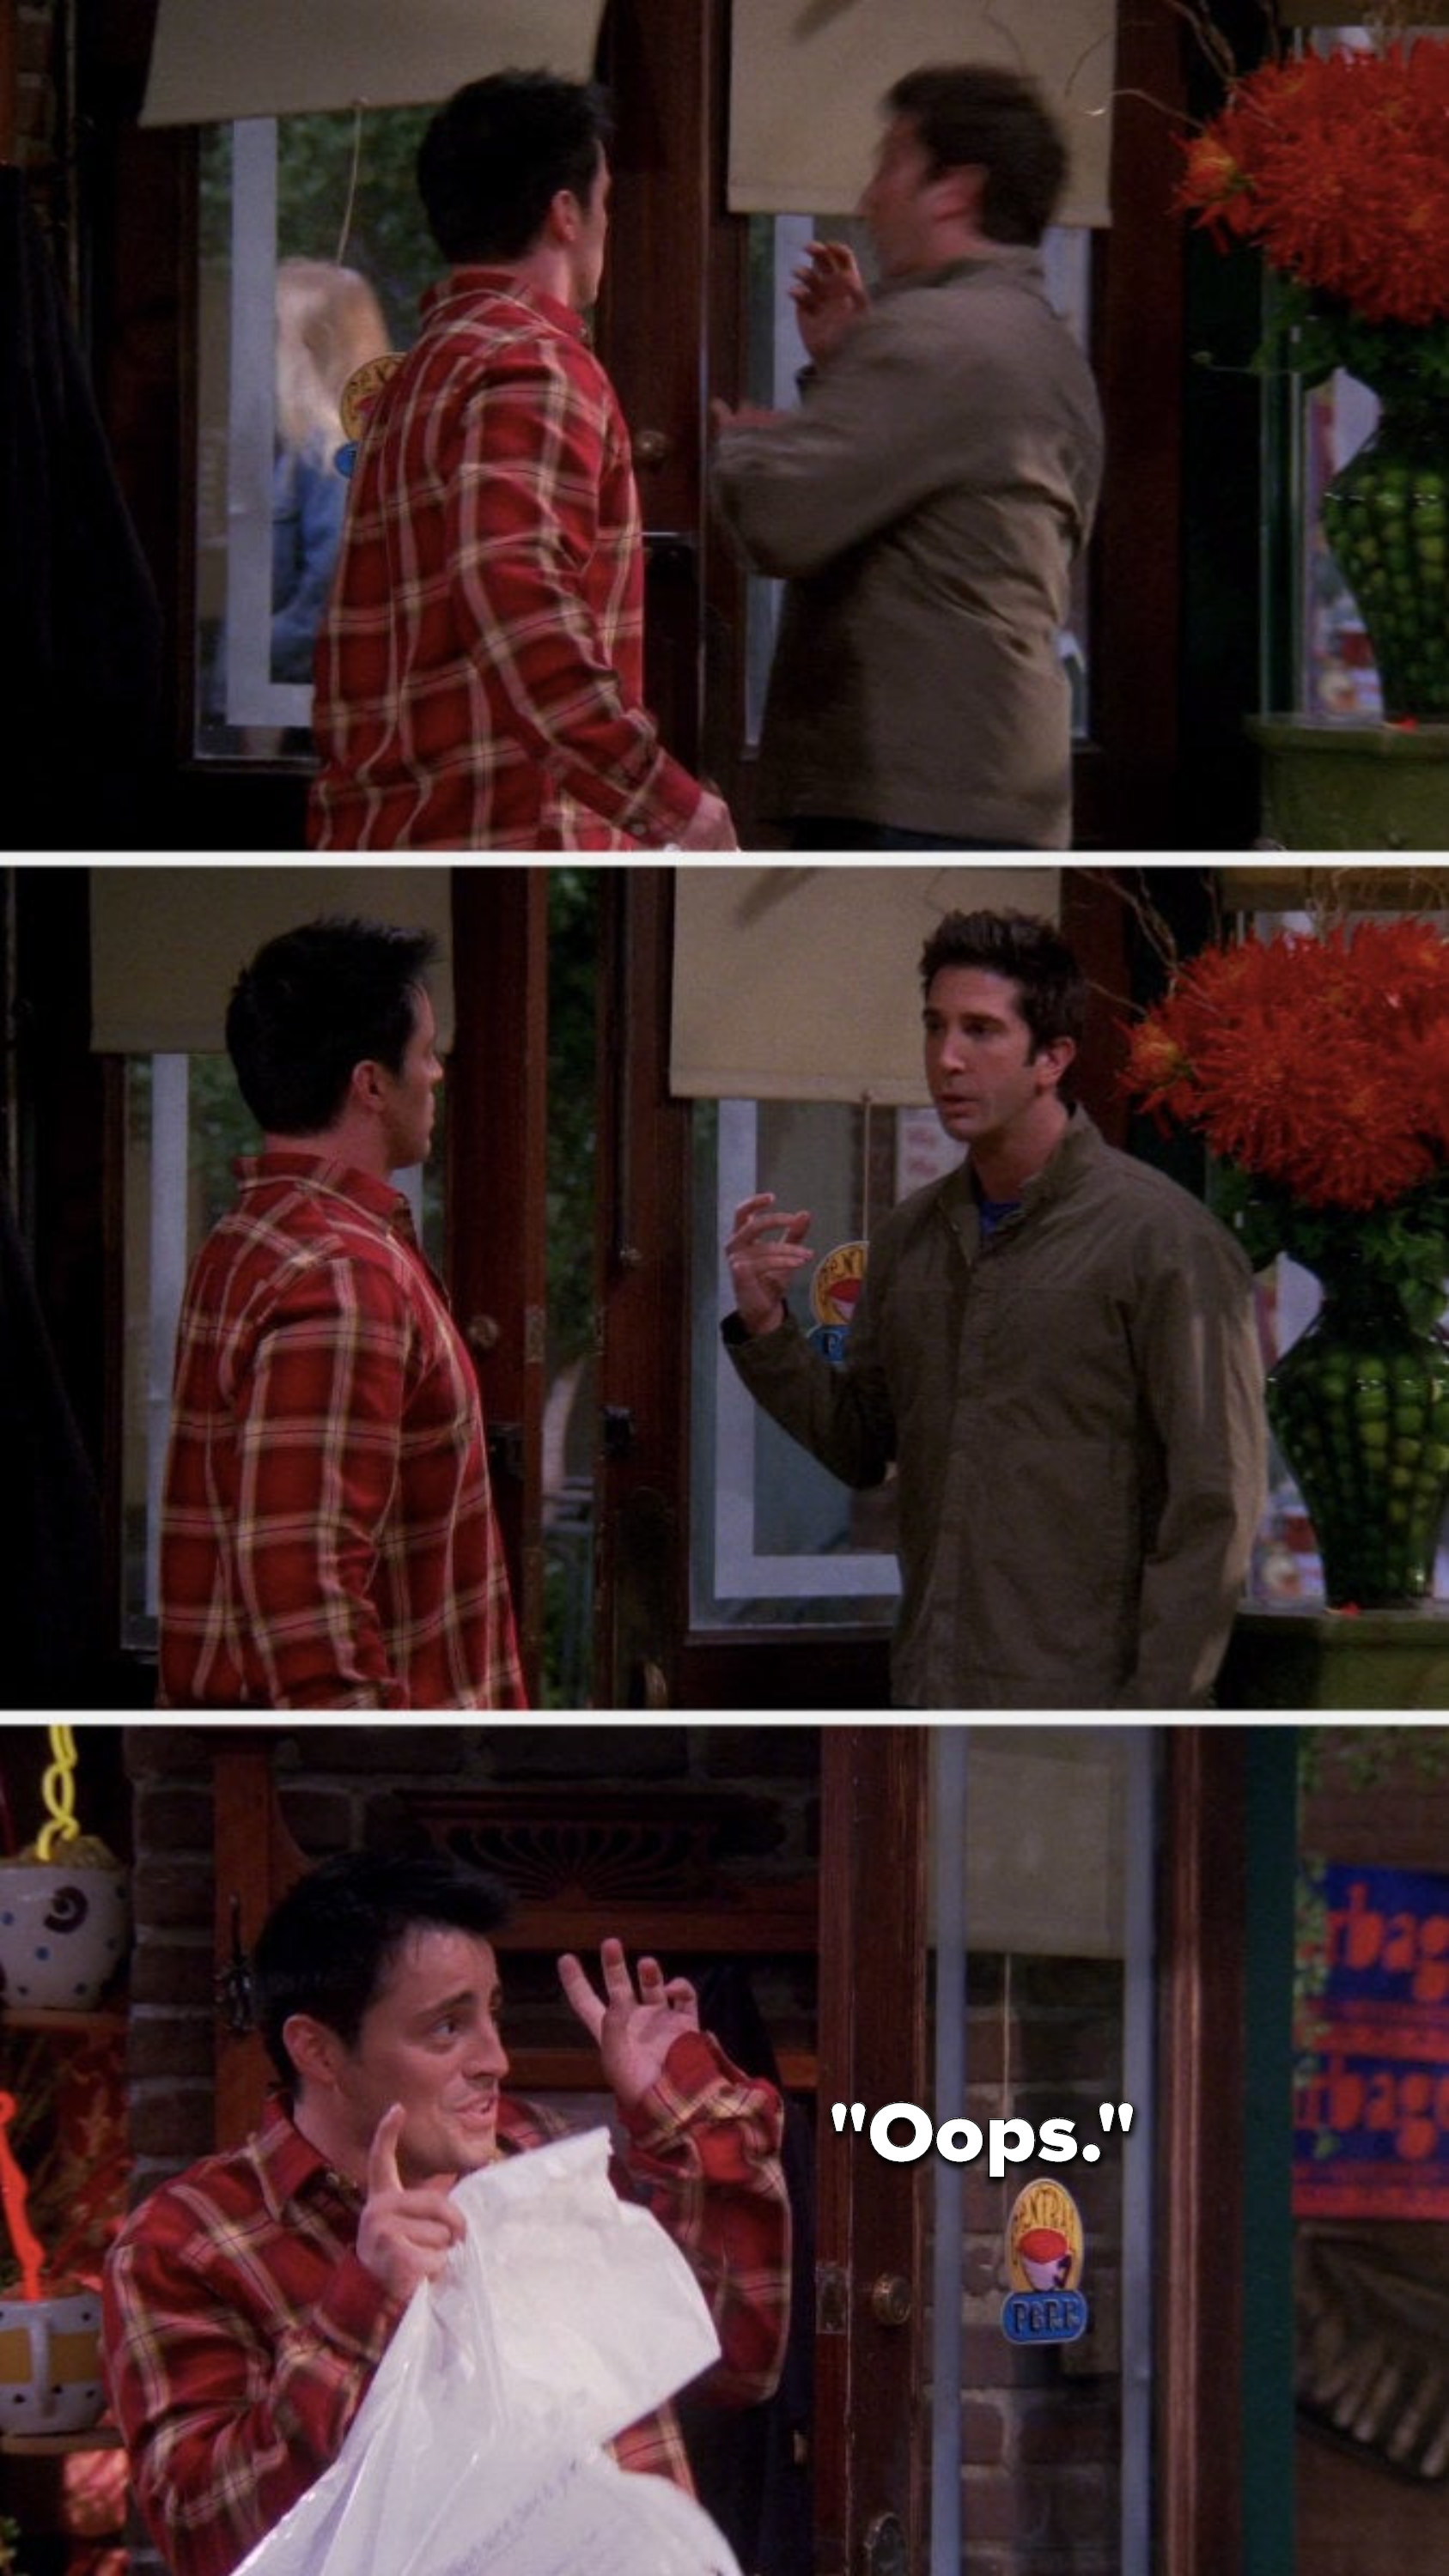 """Joey opens the door on Ross's hand, Ross looks at him angrily, and Joey does air quotes and says, """"Oops"""""""